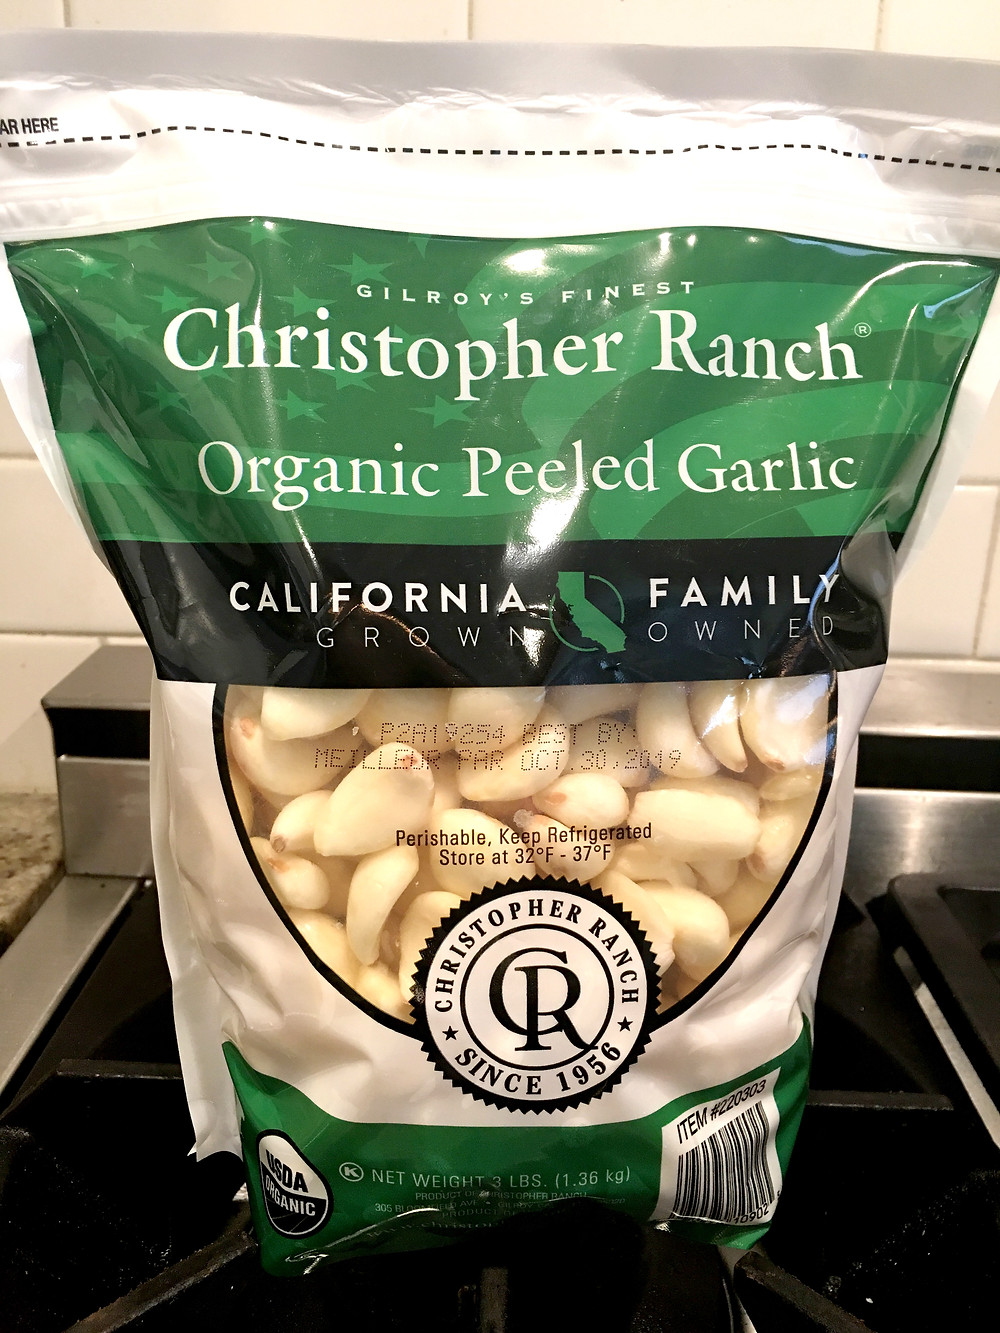 Large 3-lb bag of garlic sold at Costco